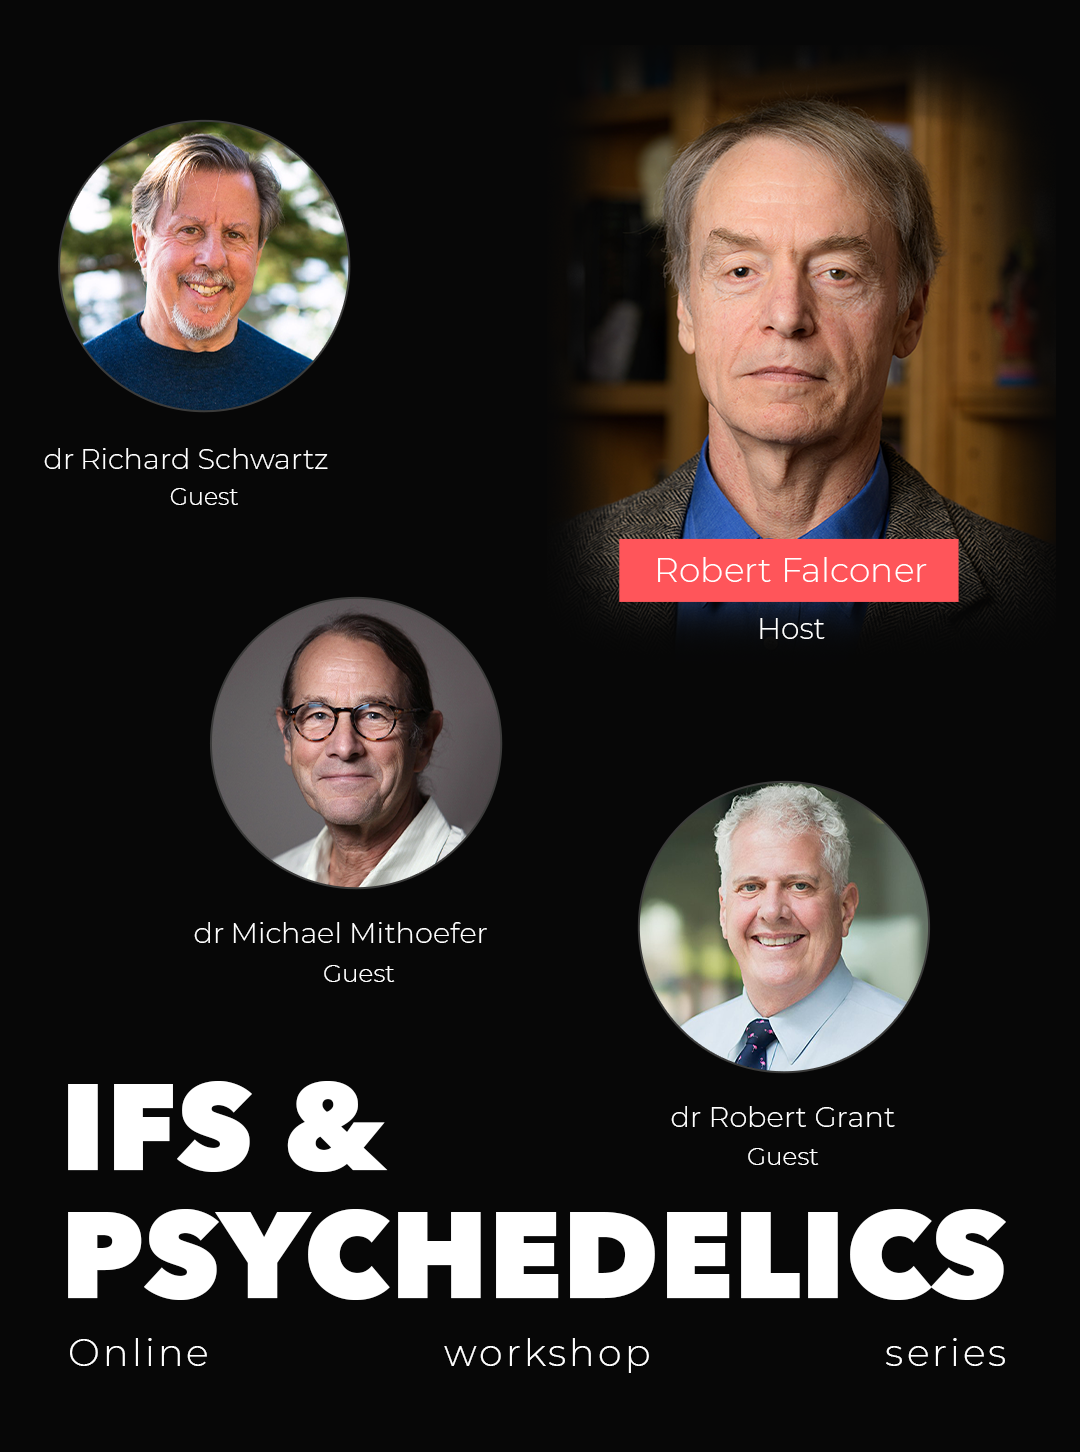 IFS & Psychedelics